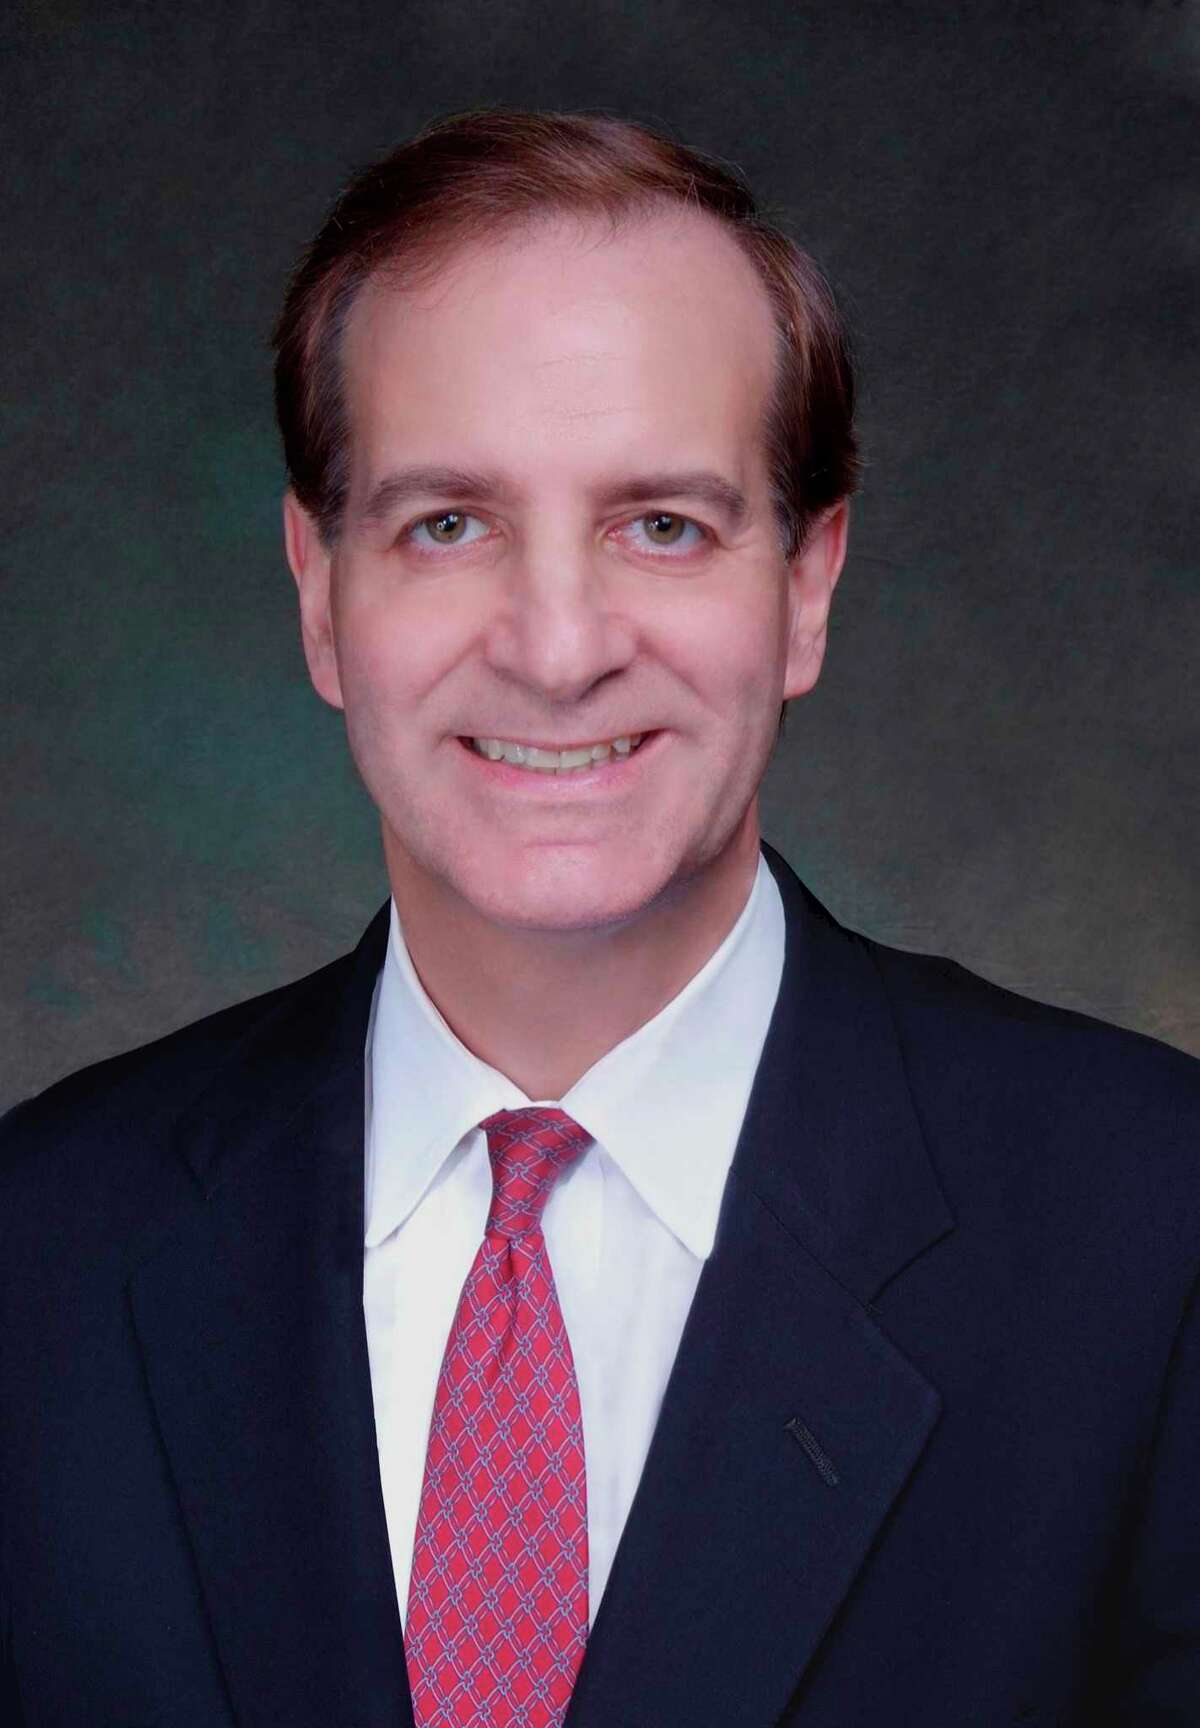 The members of the New Canaan Men's Club are going to hear from Steve Milunovich, who is a long term financial analyst, and leading research analyst, during the Men's Club's Friday meeting on Friday, June 11, about the latest trends, and market drivers that are affecting the technology industry.